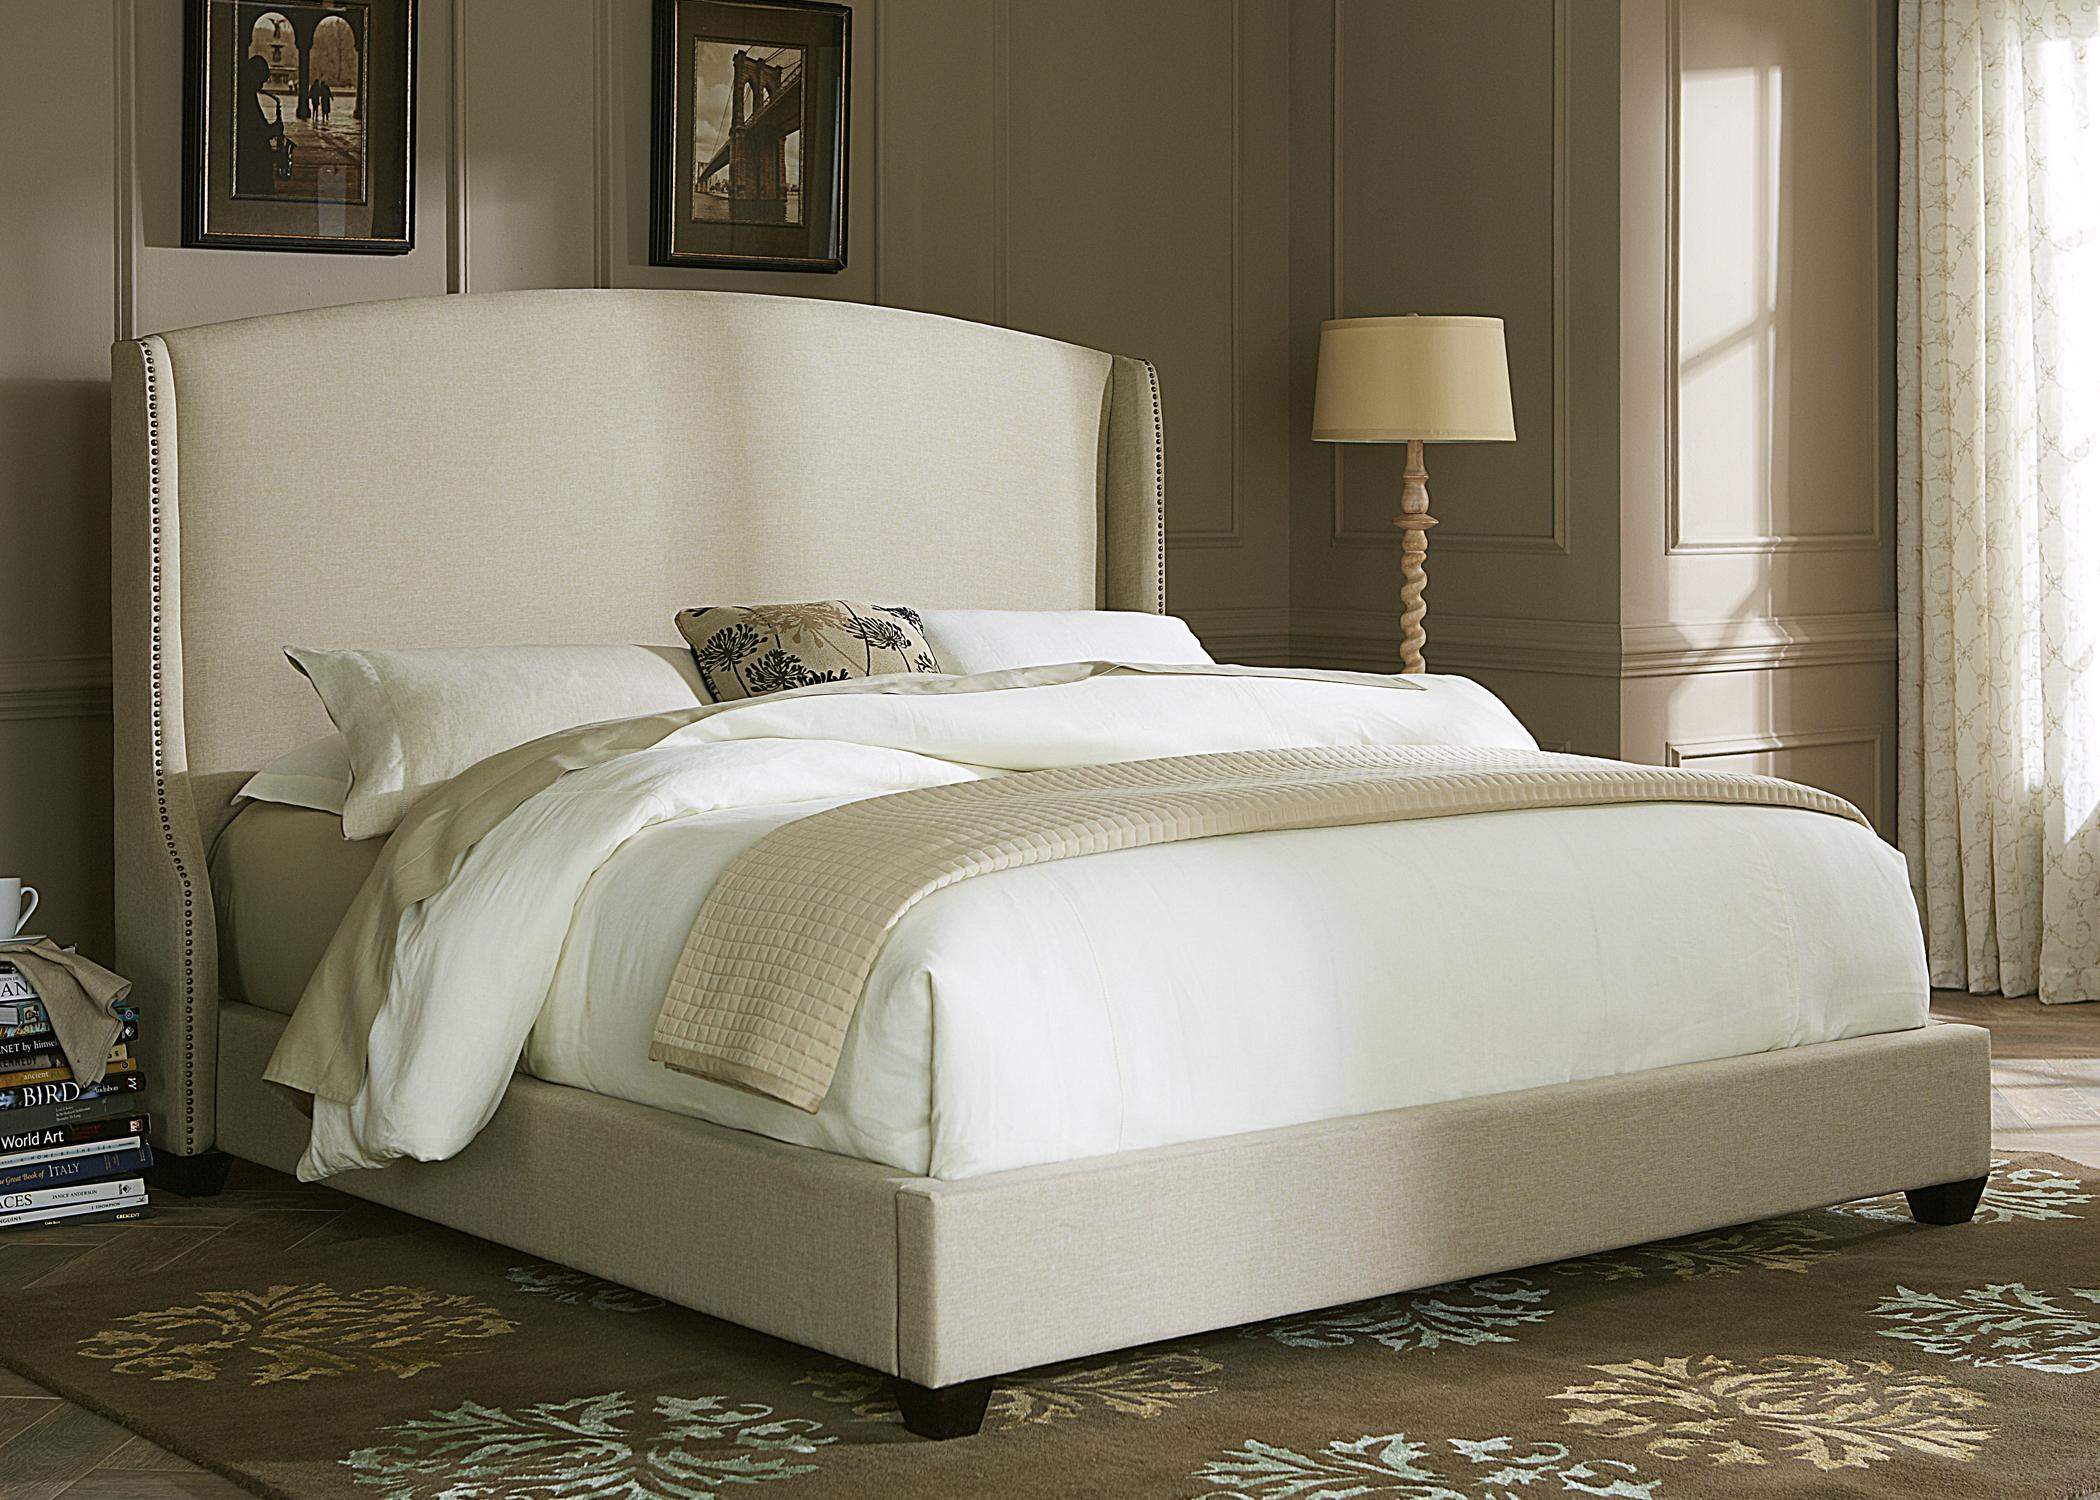 Upholstered Beds Queen Shelter Bed  by Liberty Furniture at Lapeer Furniture & Mattress Center